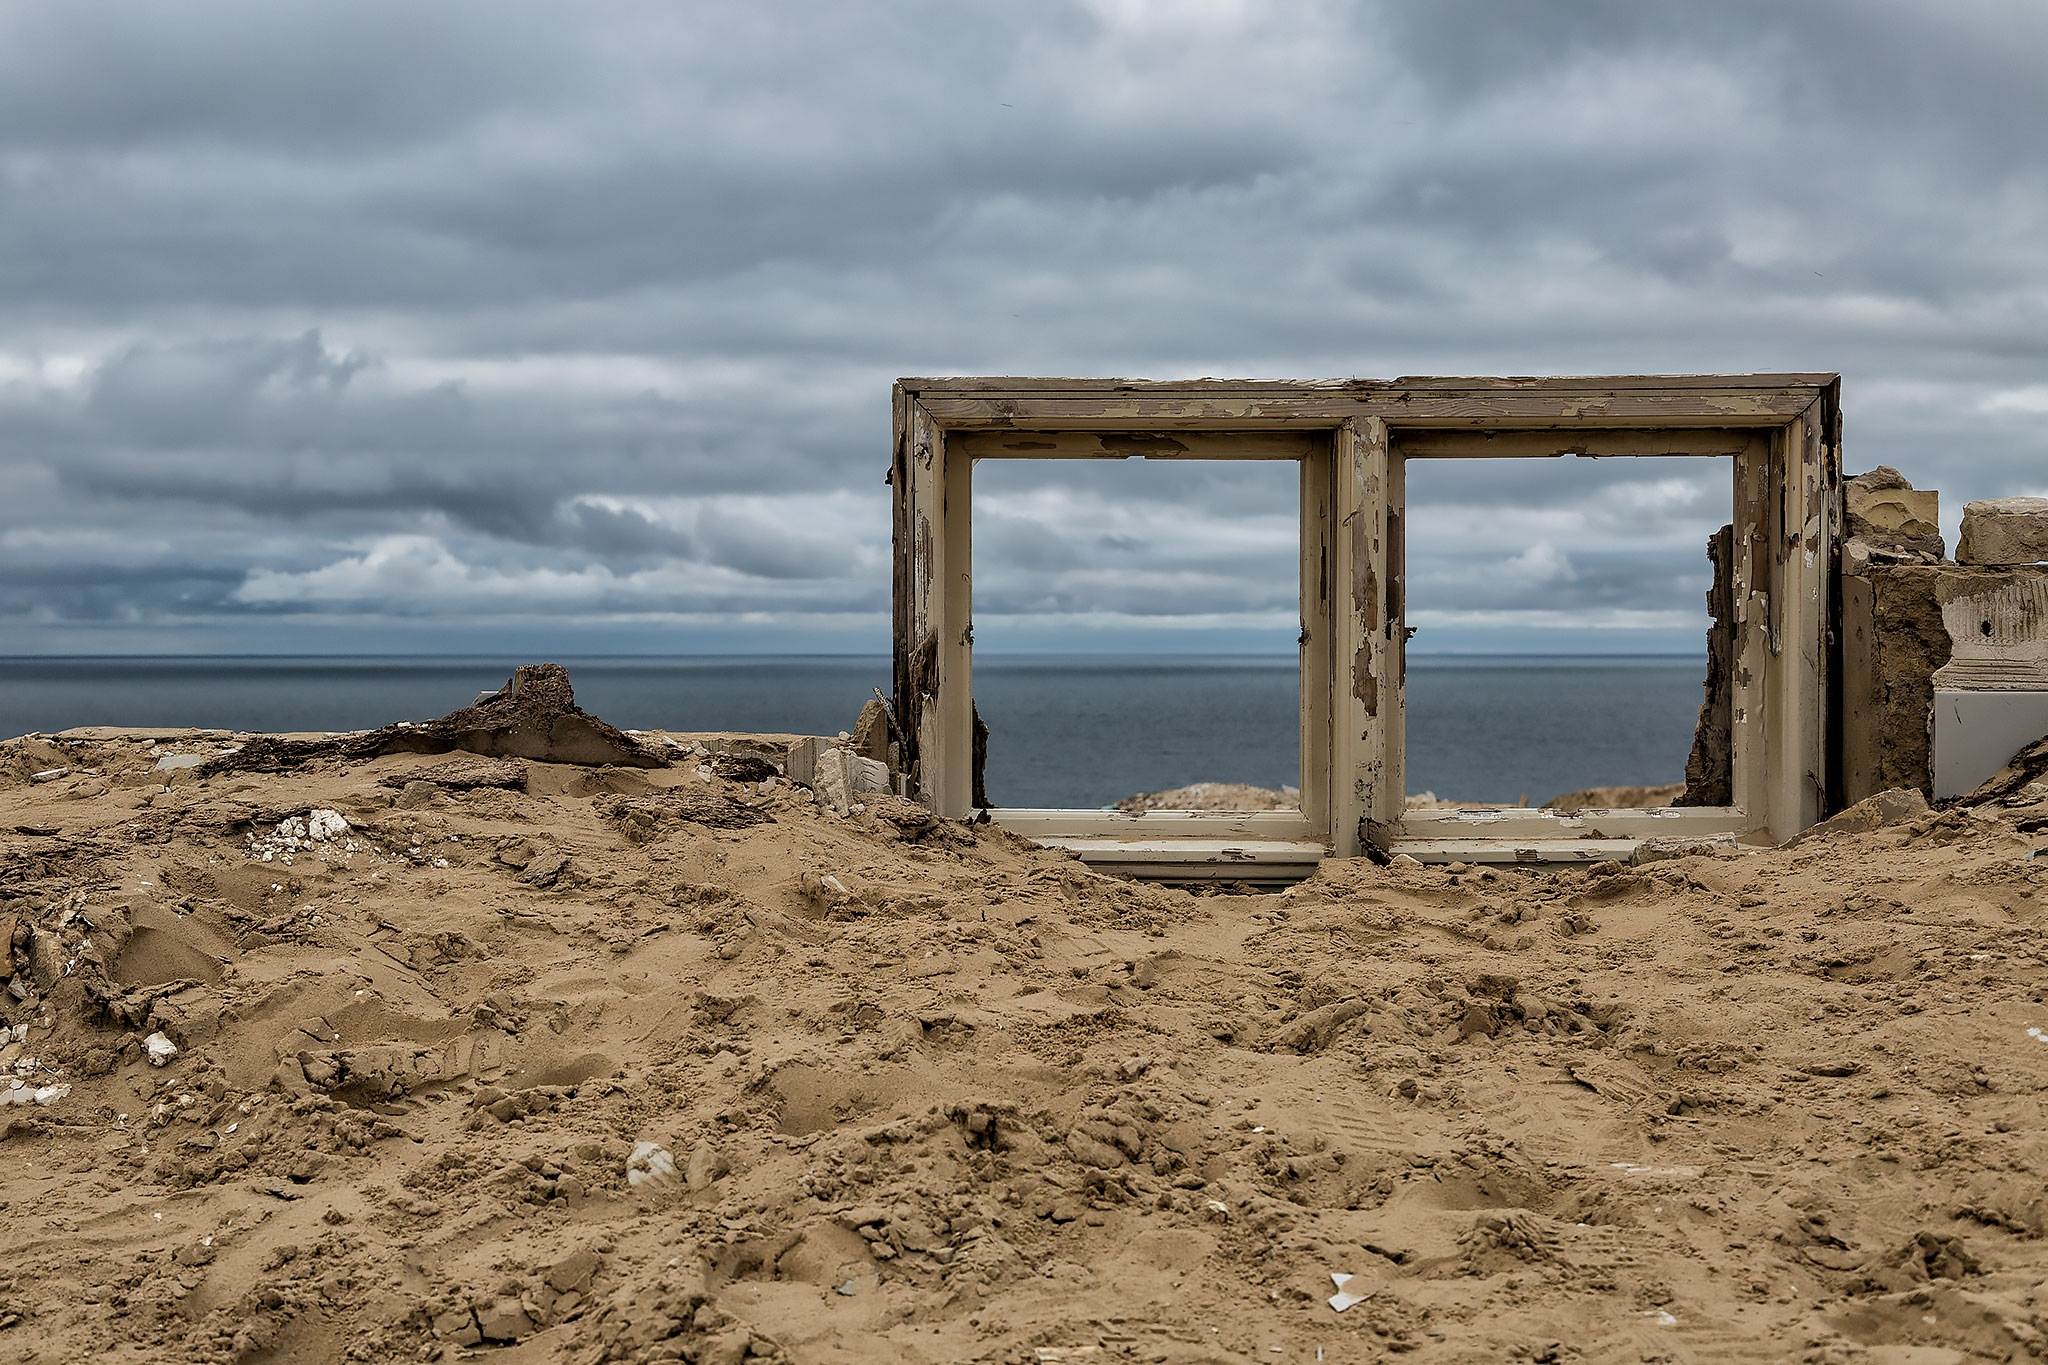 window with a view by Claus Lyst Hansen